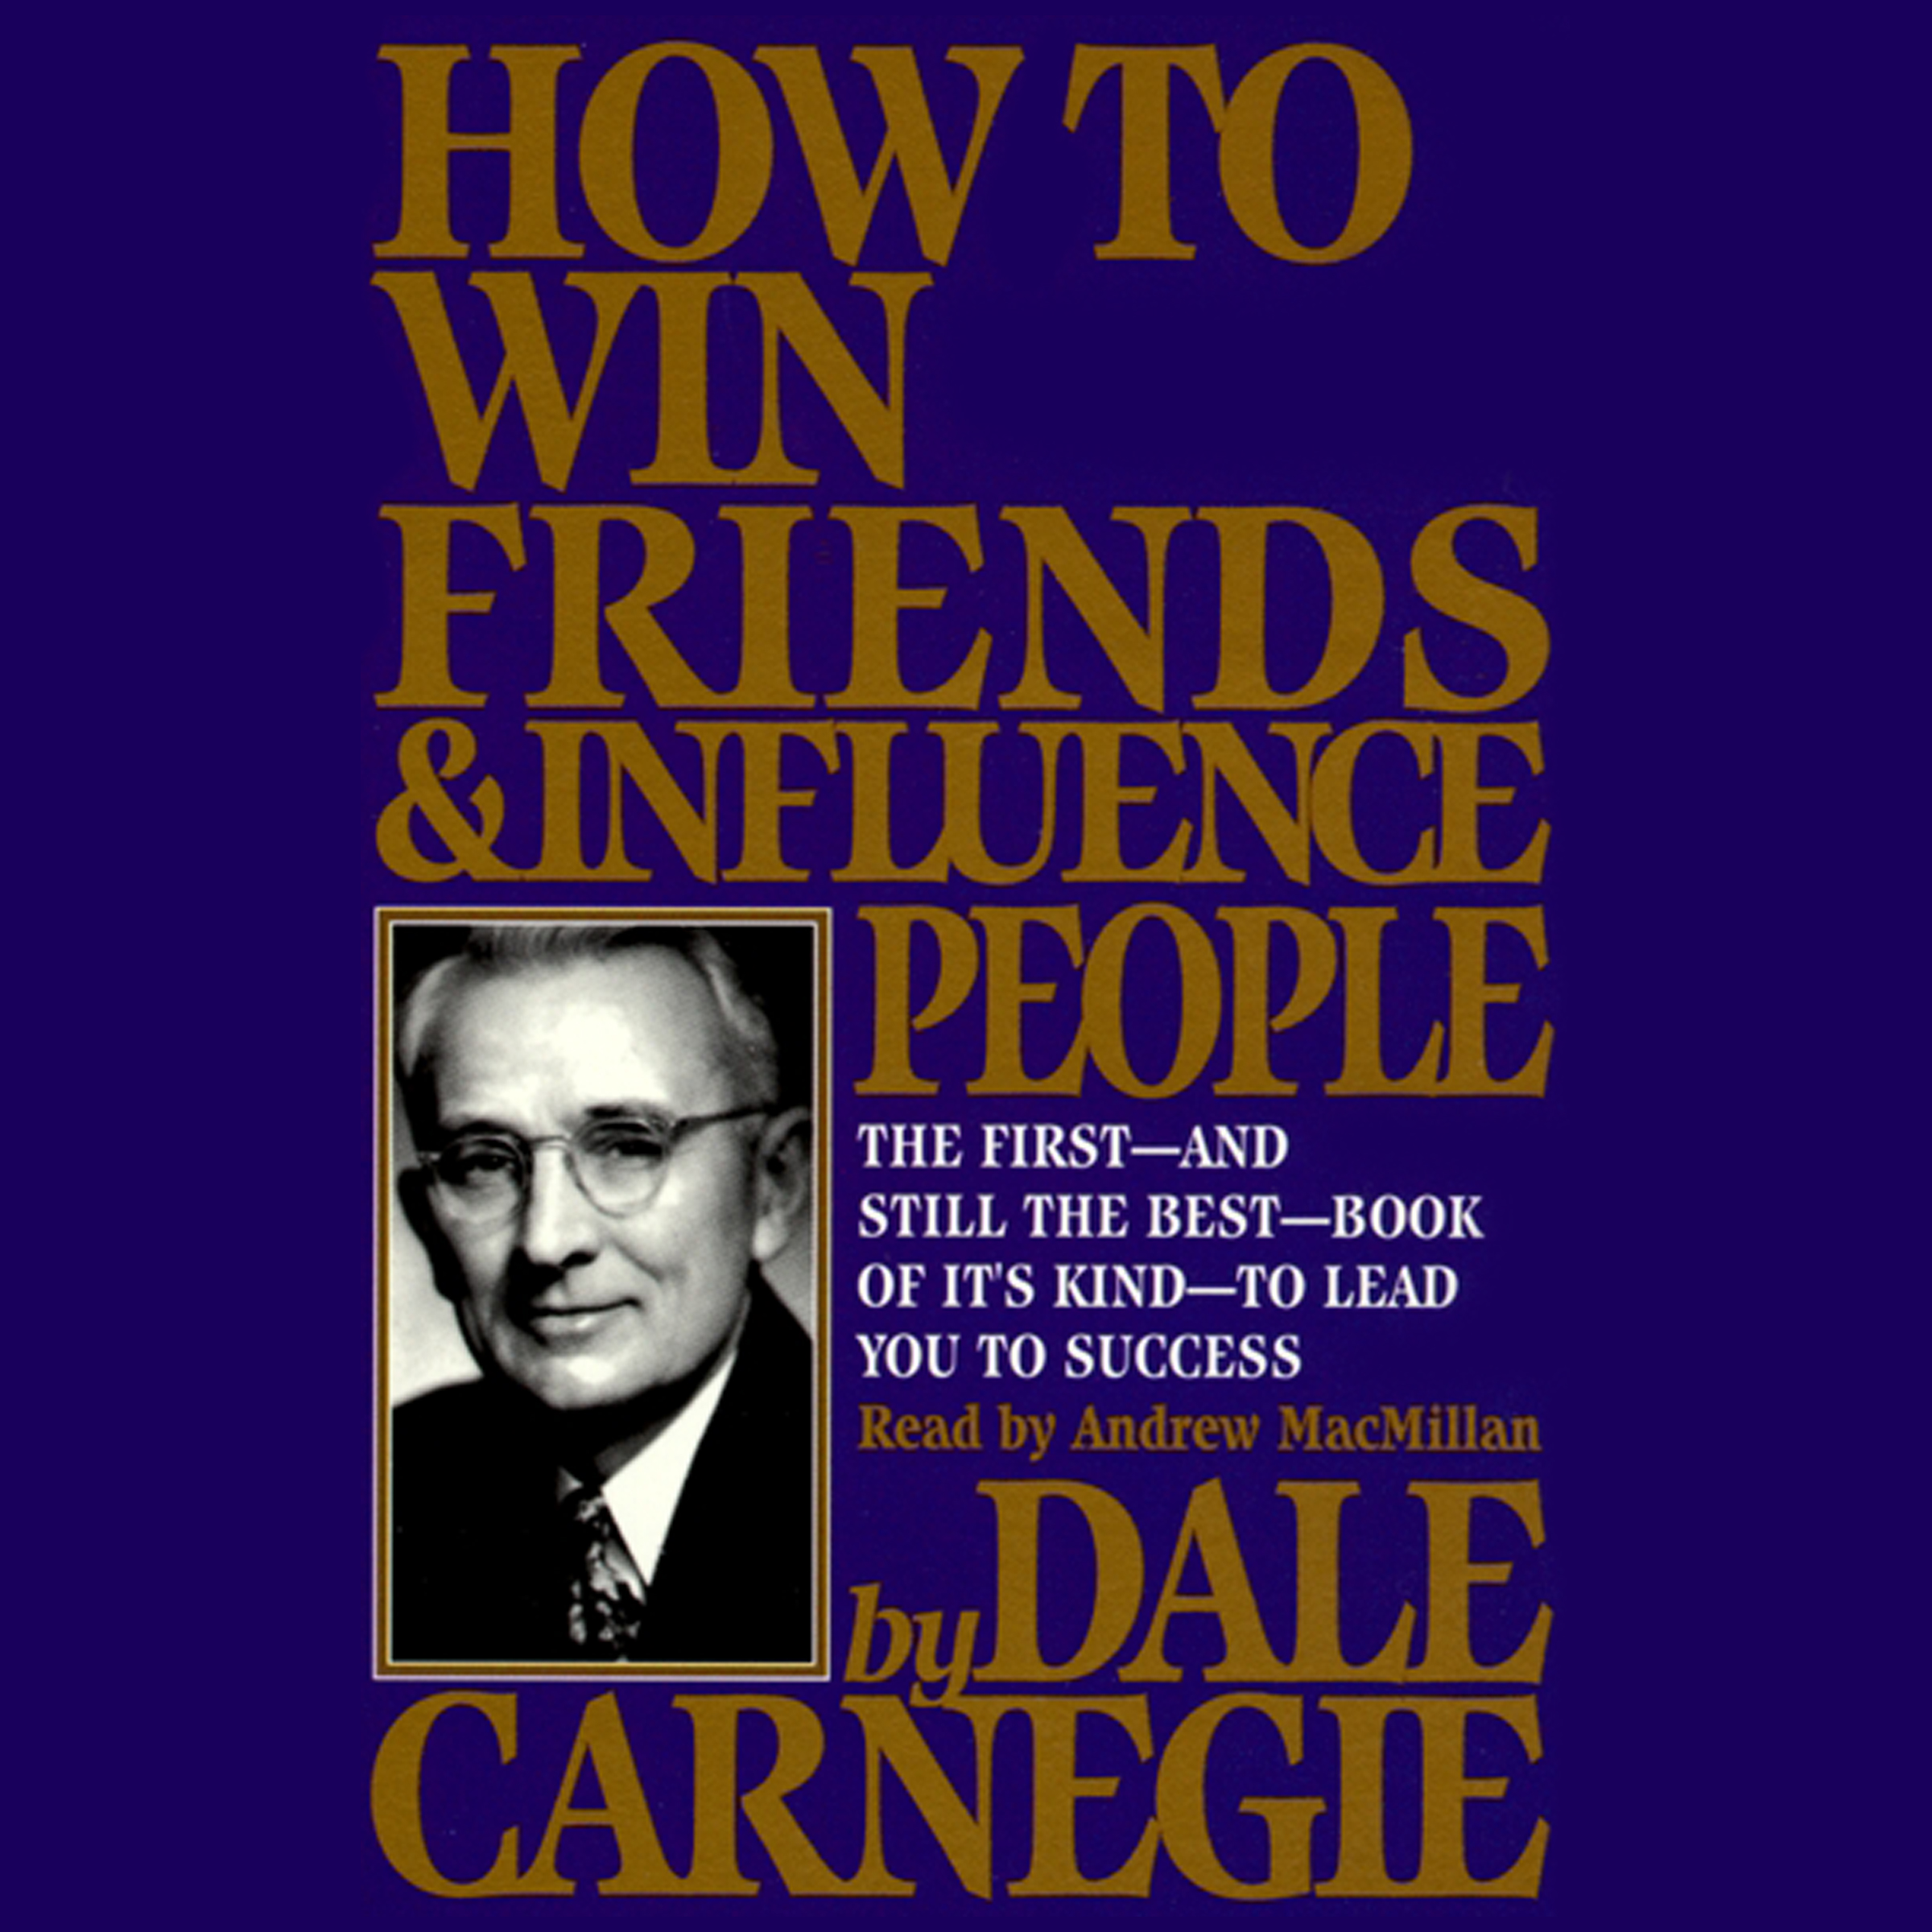 How to win friends and influence people 9780743544719 hr